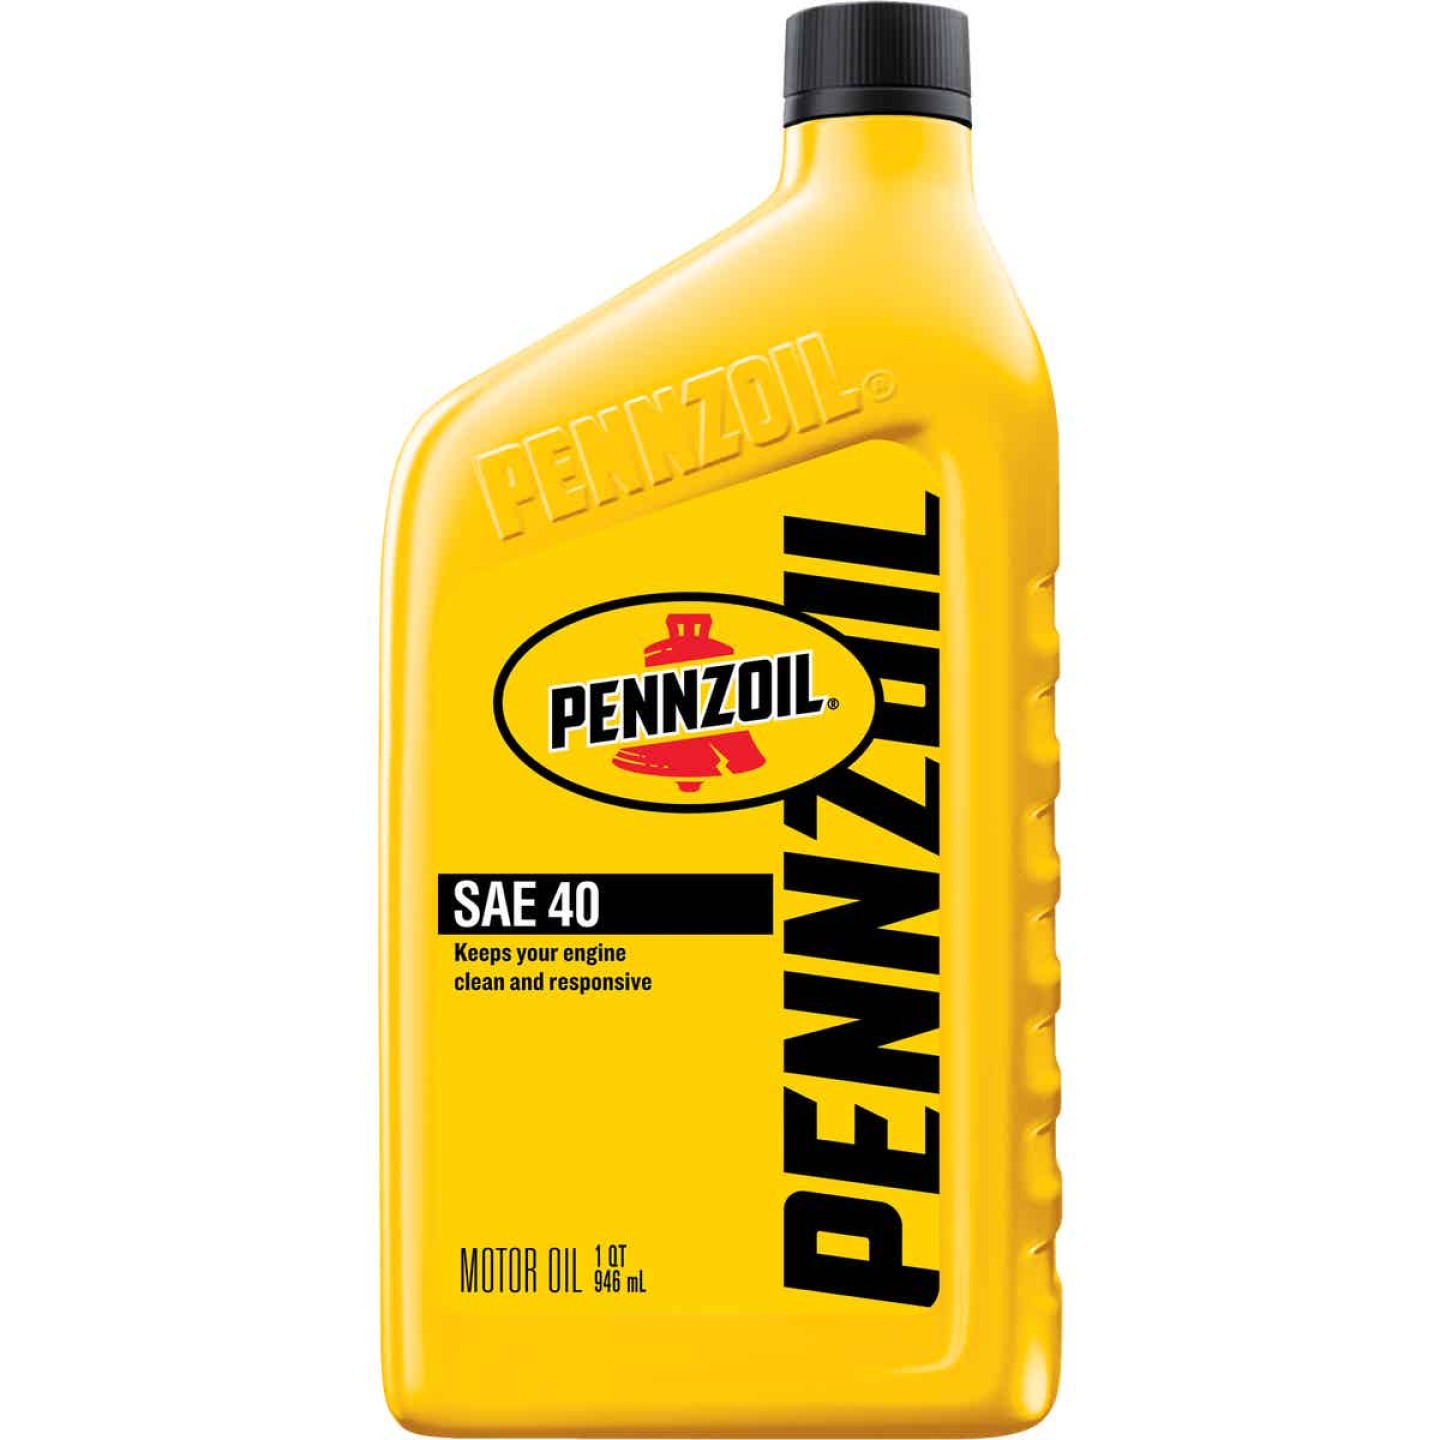 Pennzoil 40W Quart Heavy-Duty Motor Oil Image 1